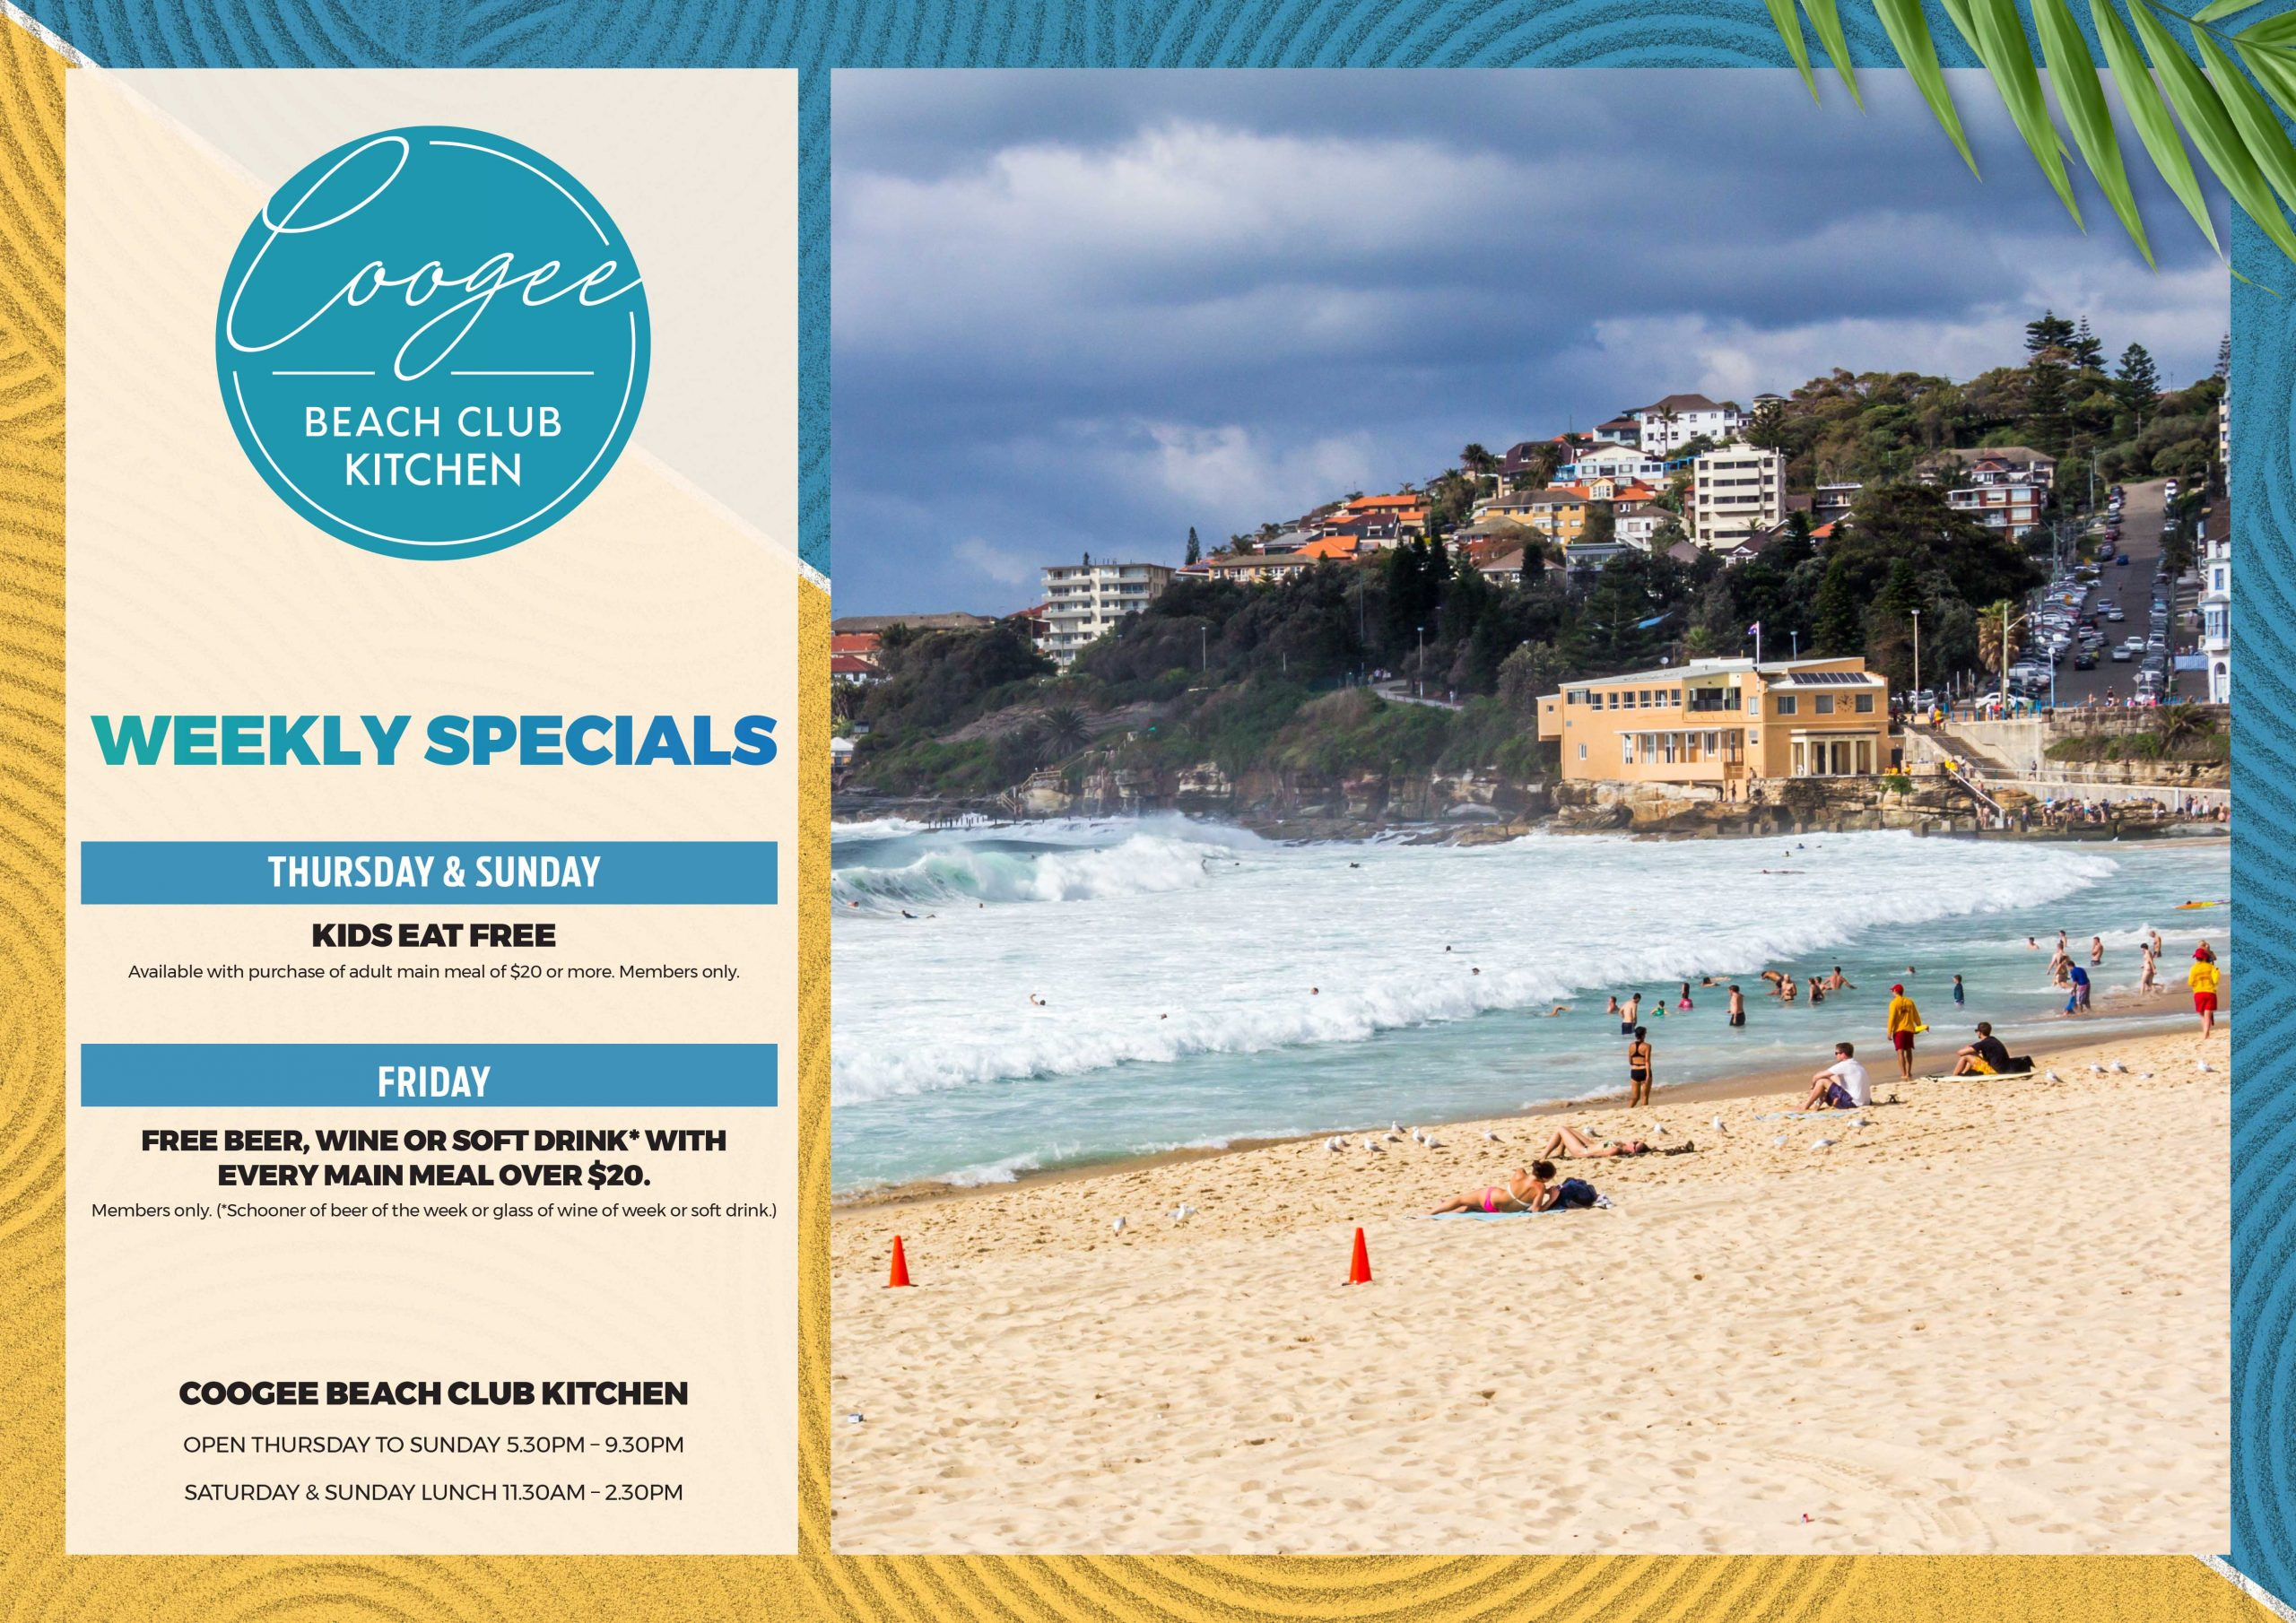 Coogee Beach Club Kitchen Specials